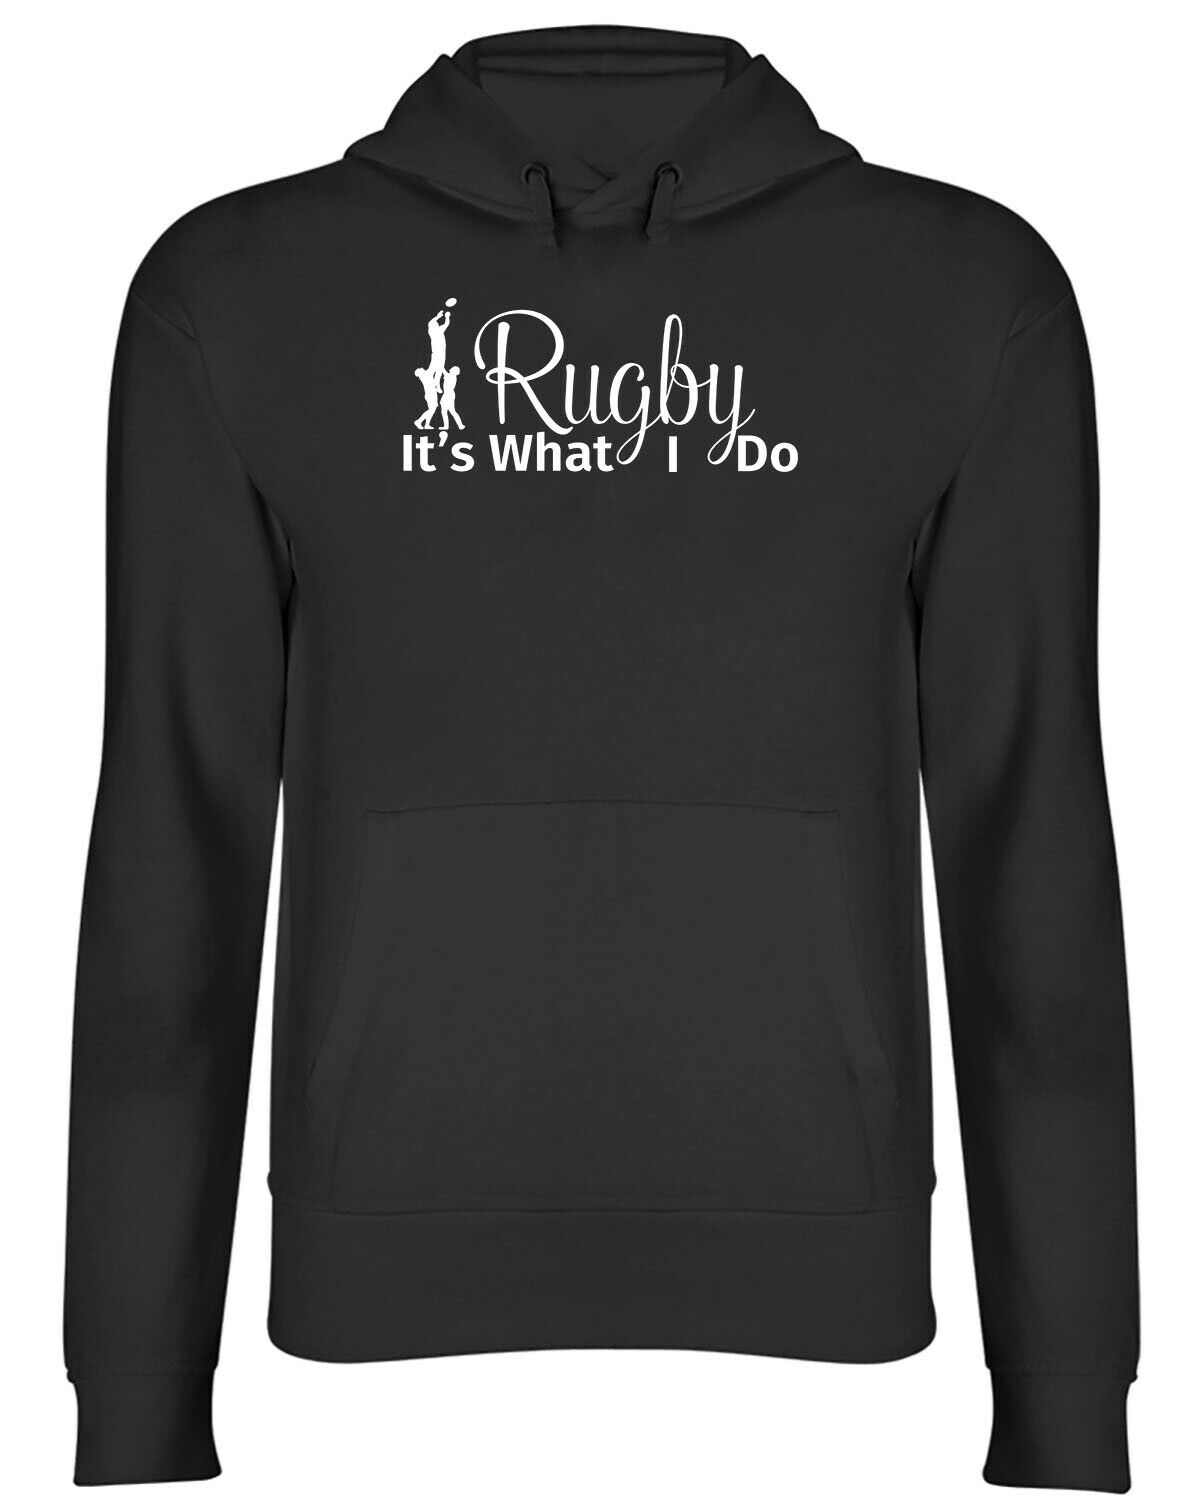 Rugby It's What I Do Mens Womens Hooded Top Hoodie